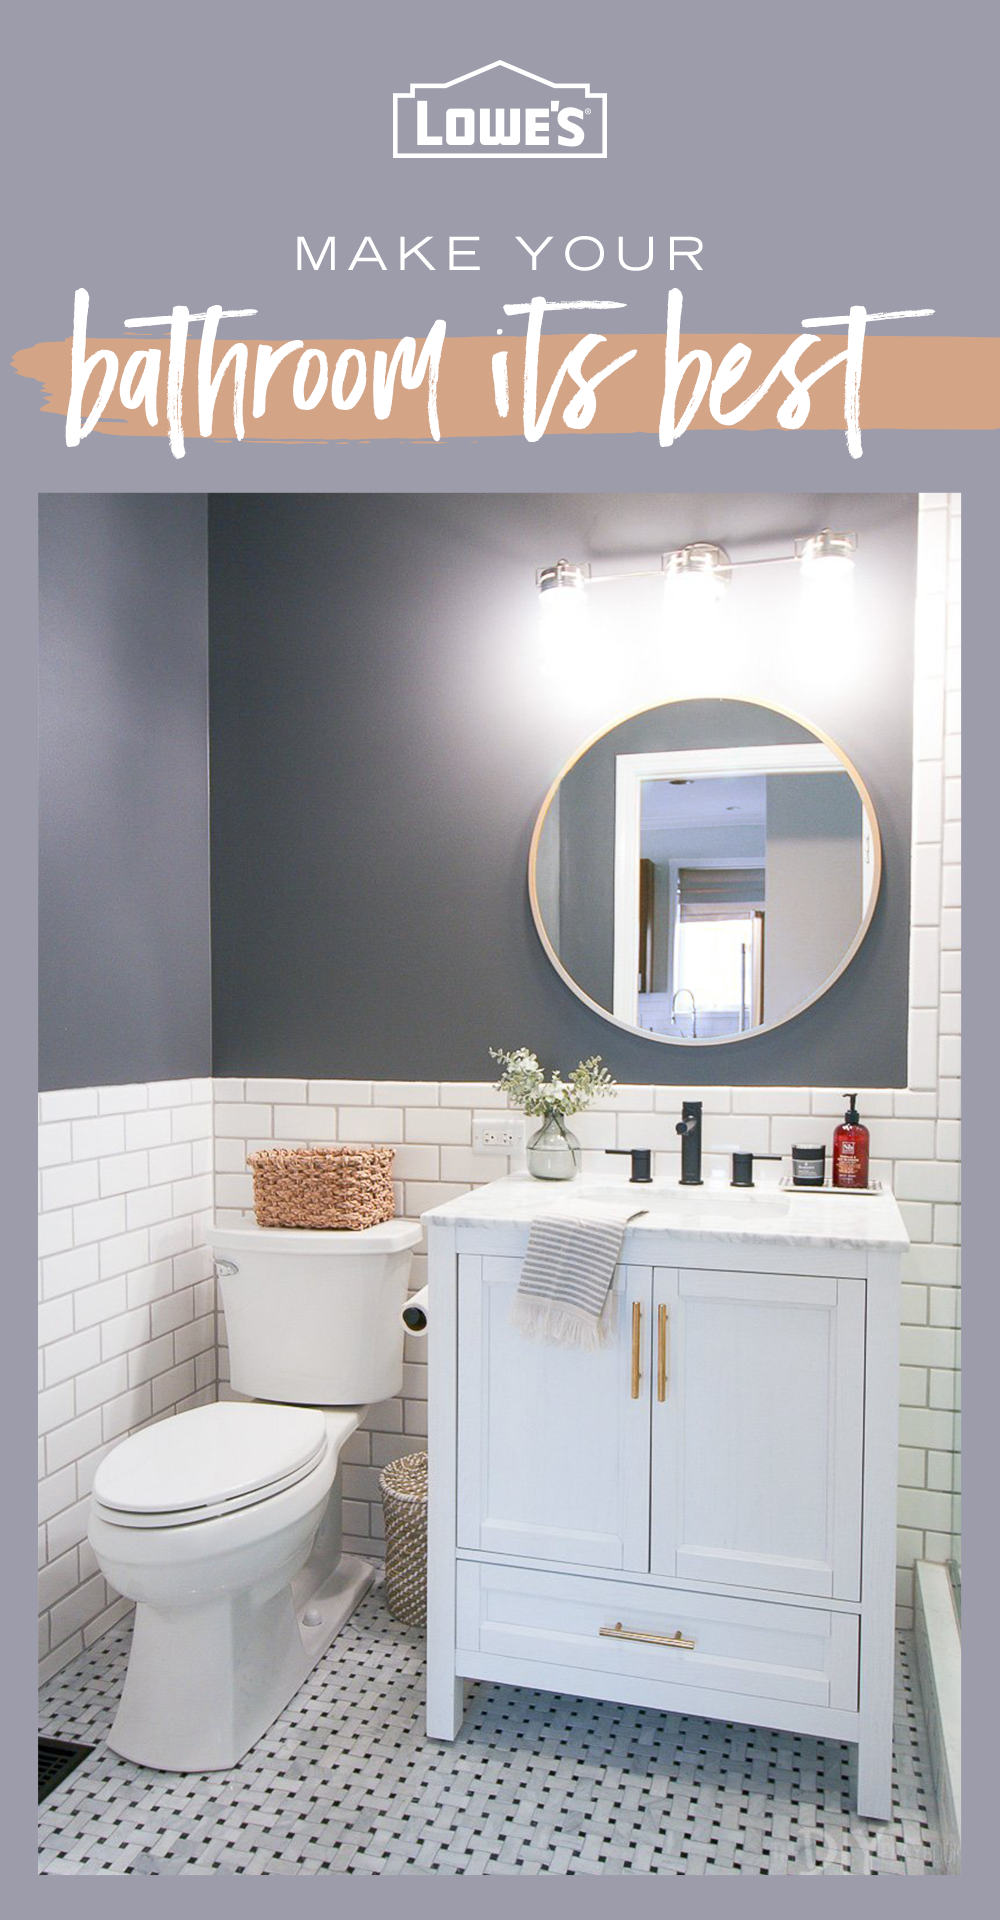 Looking to beautify your bathroom Lowes has everything you need to upgrade and elevate Tap the Pin to learn more